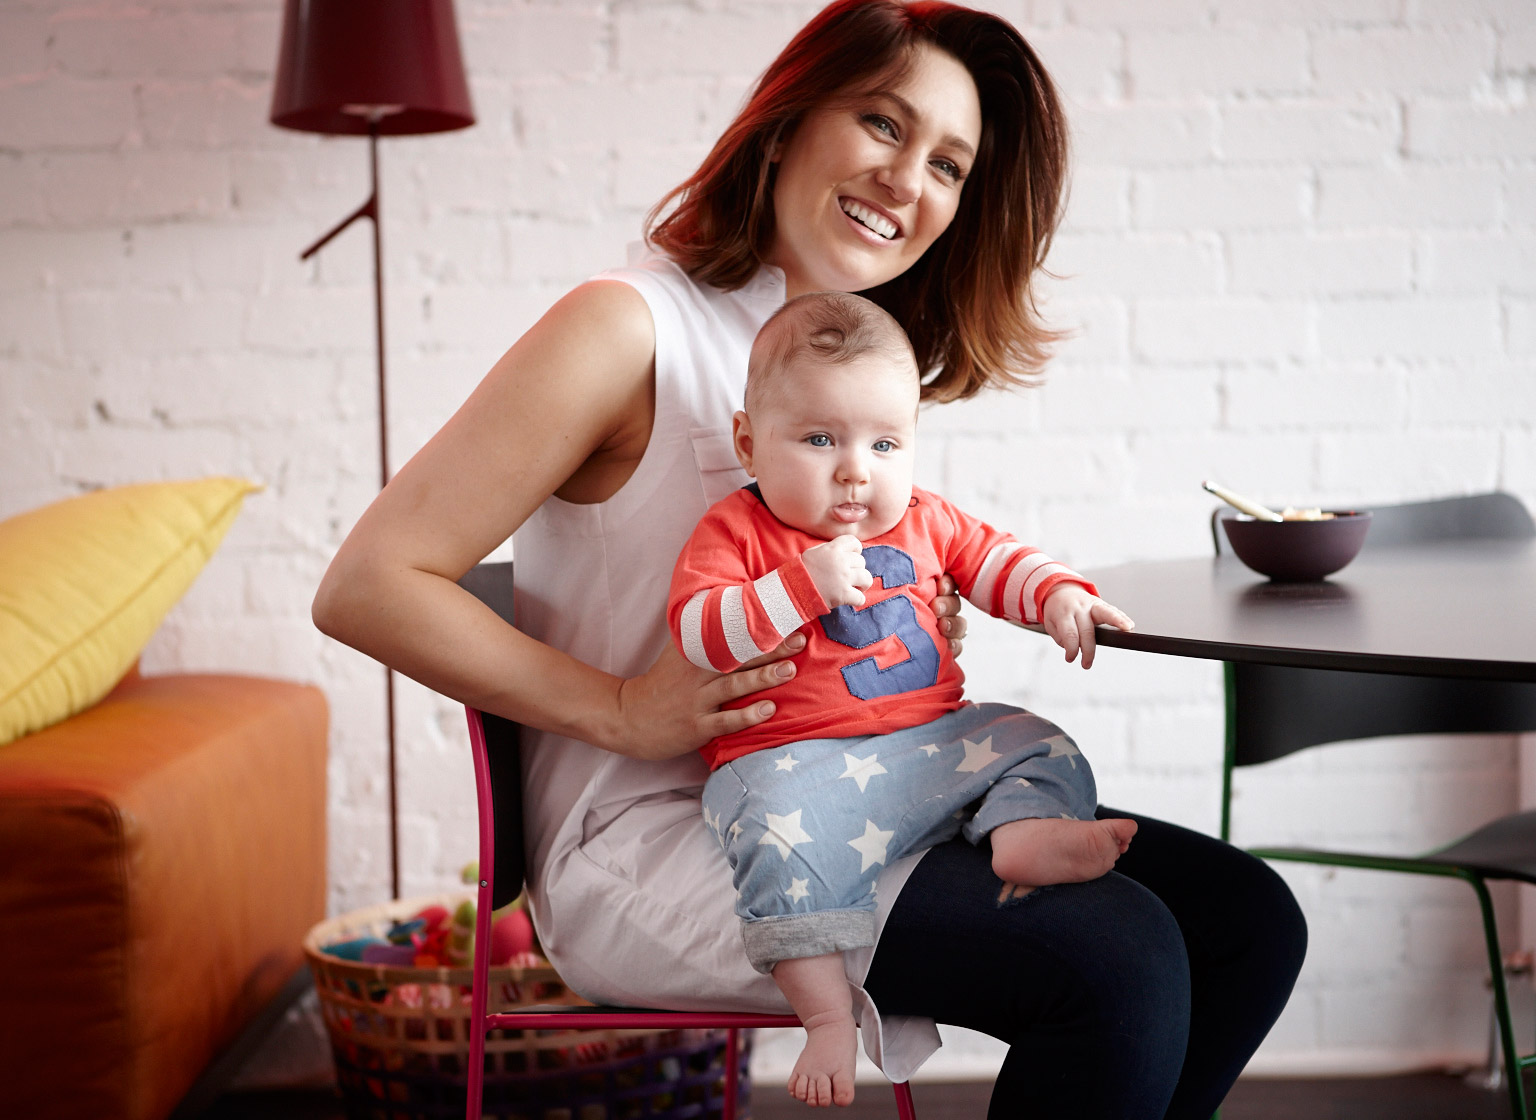 b72eb5d9e A gifted writer, it's no surprise Foster Blake is full of wise words on  motherhood: ""